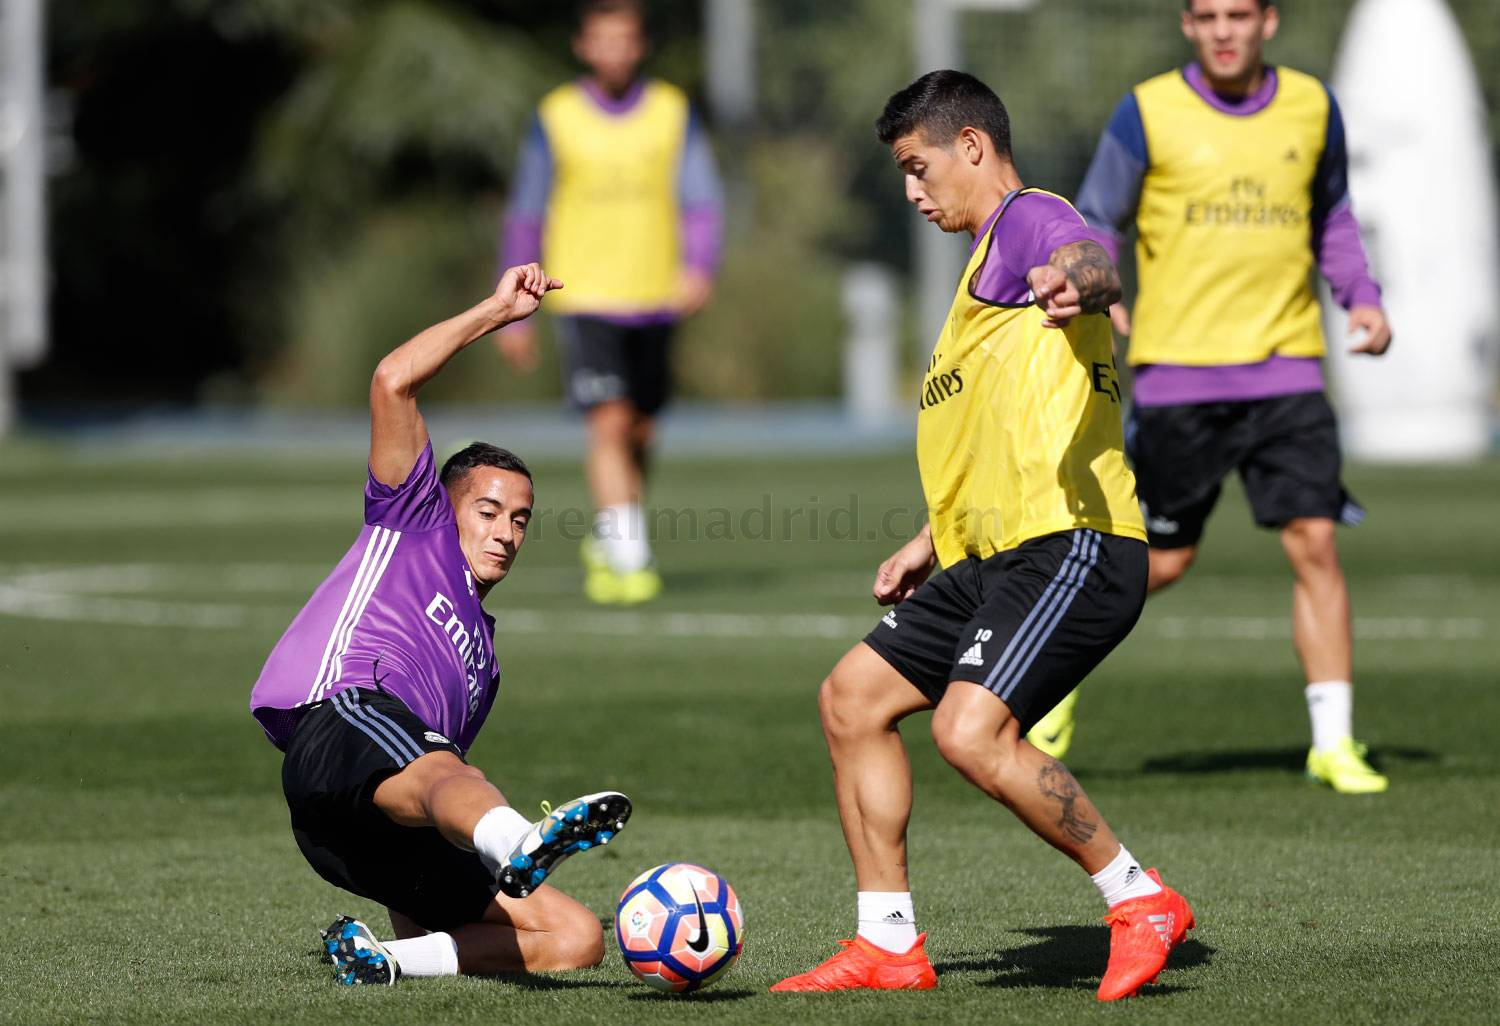 Real Madrid - Entrenamiento del Real Madrid - 20-09-2016